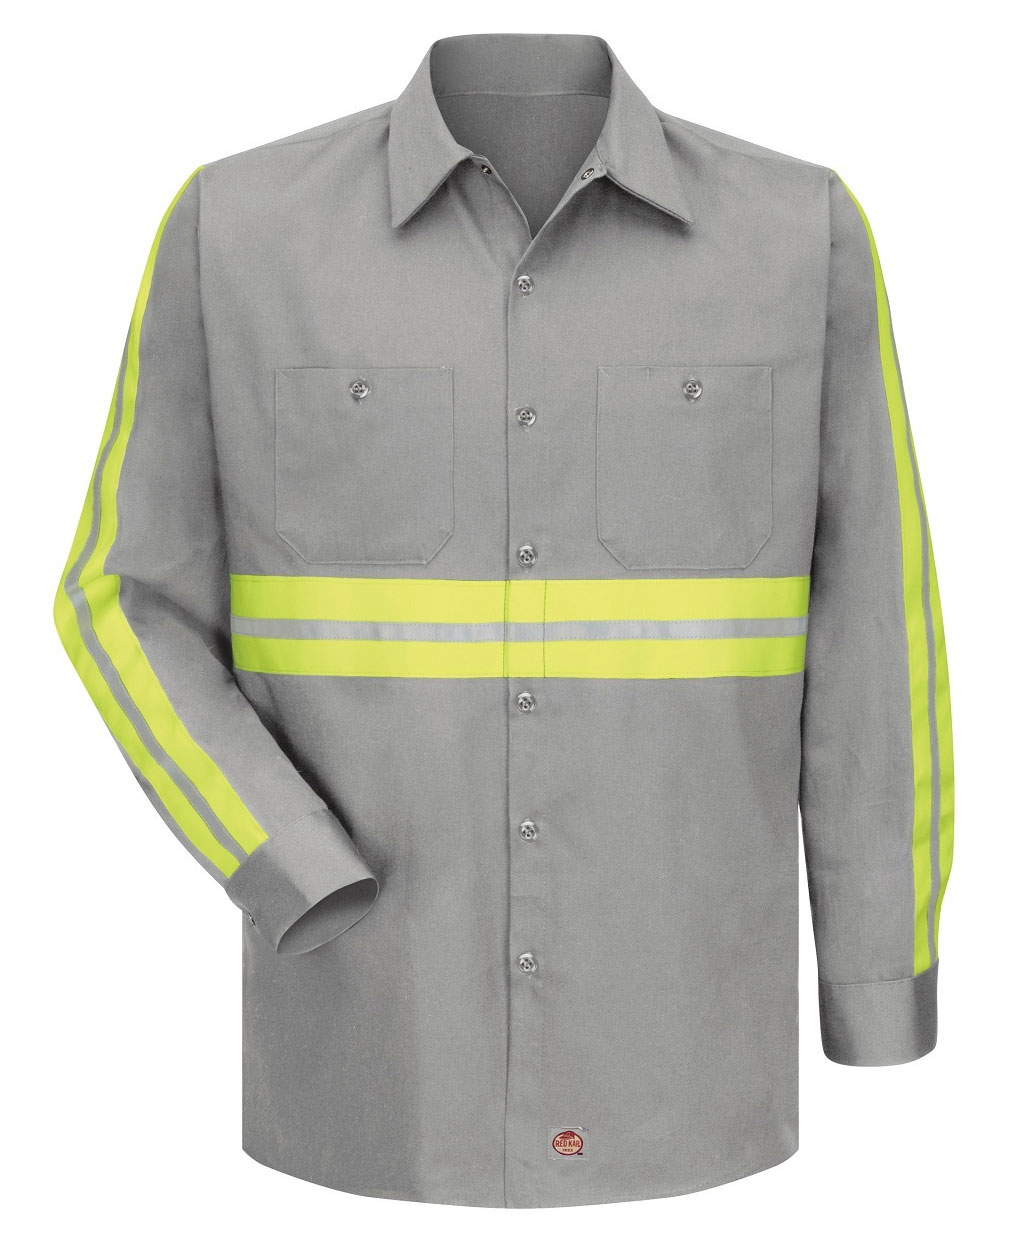 Mens Enhanced Visibility L/S Cotton Work Shirt